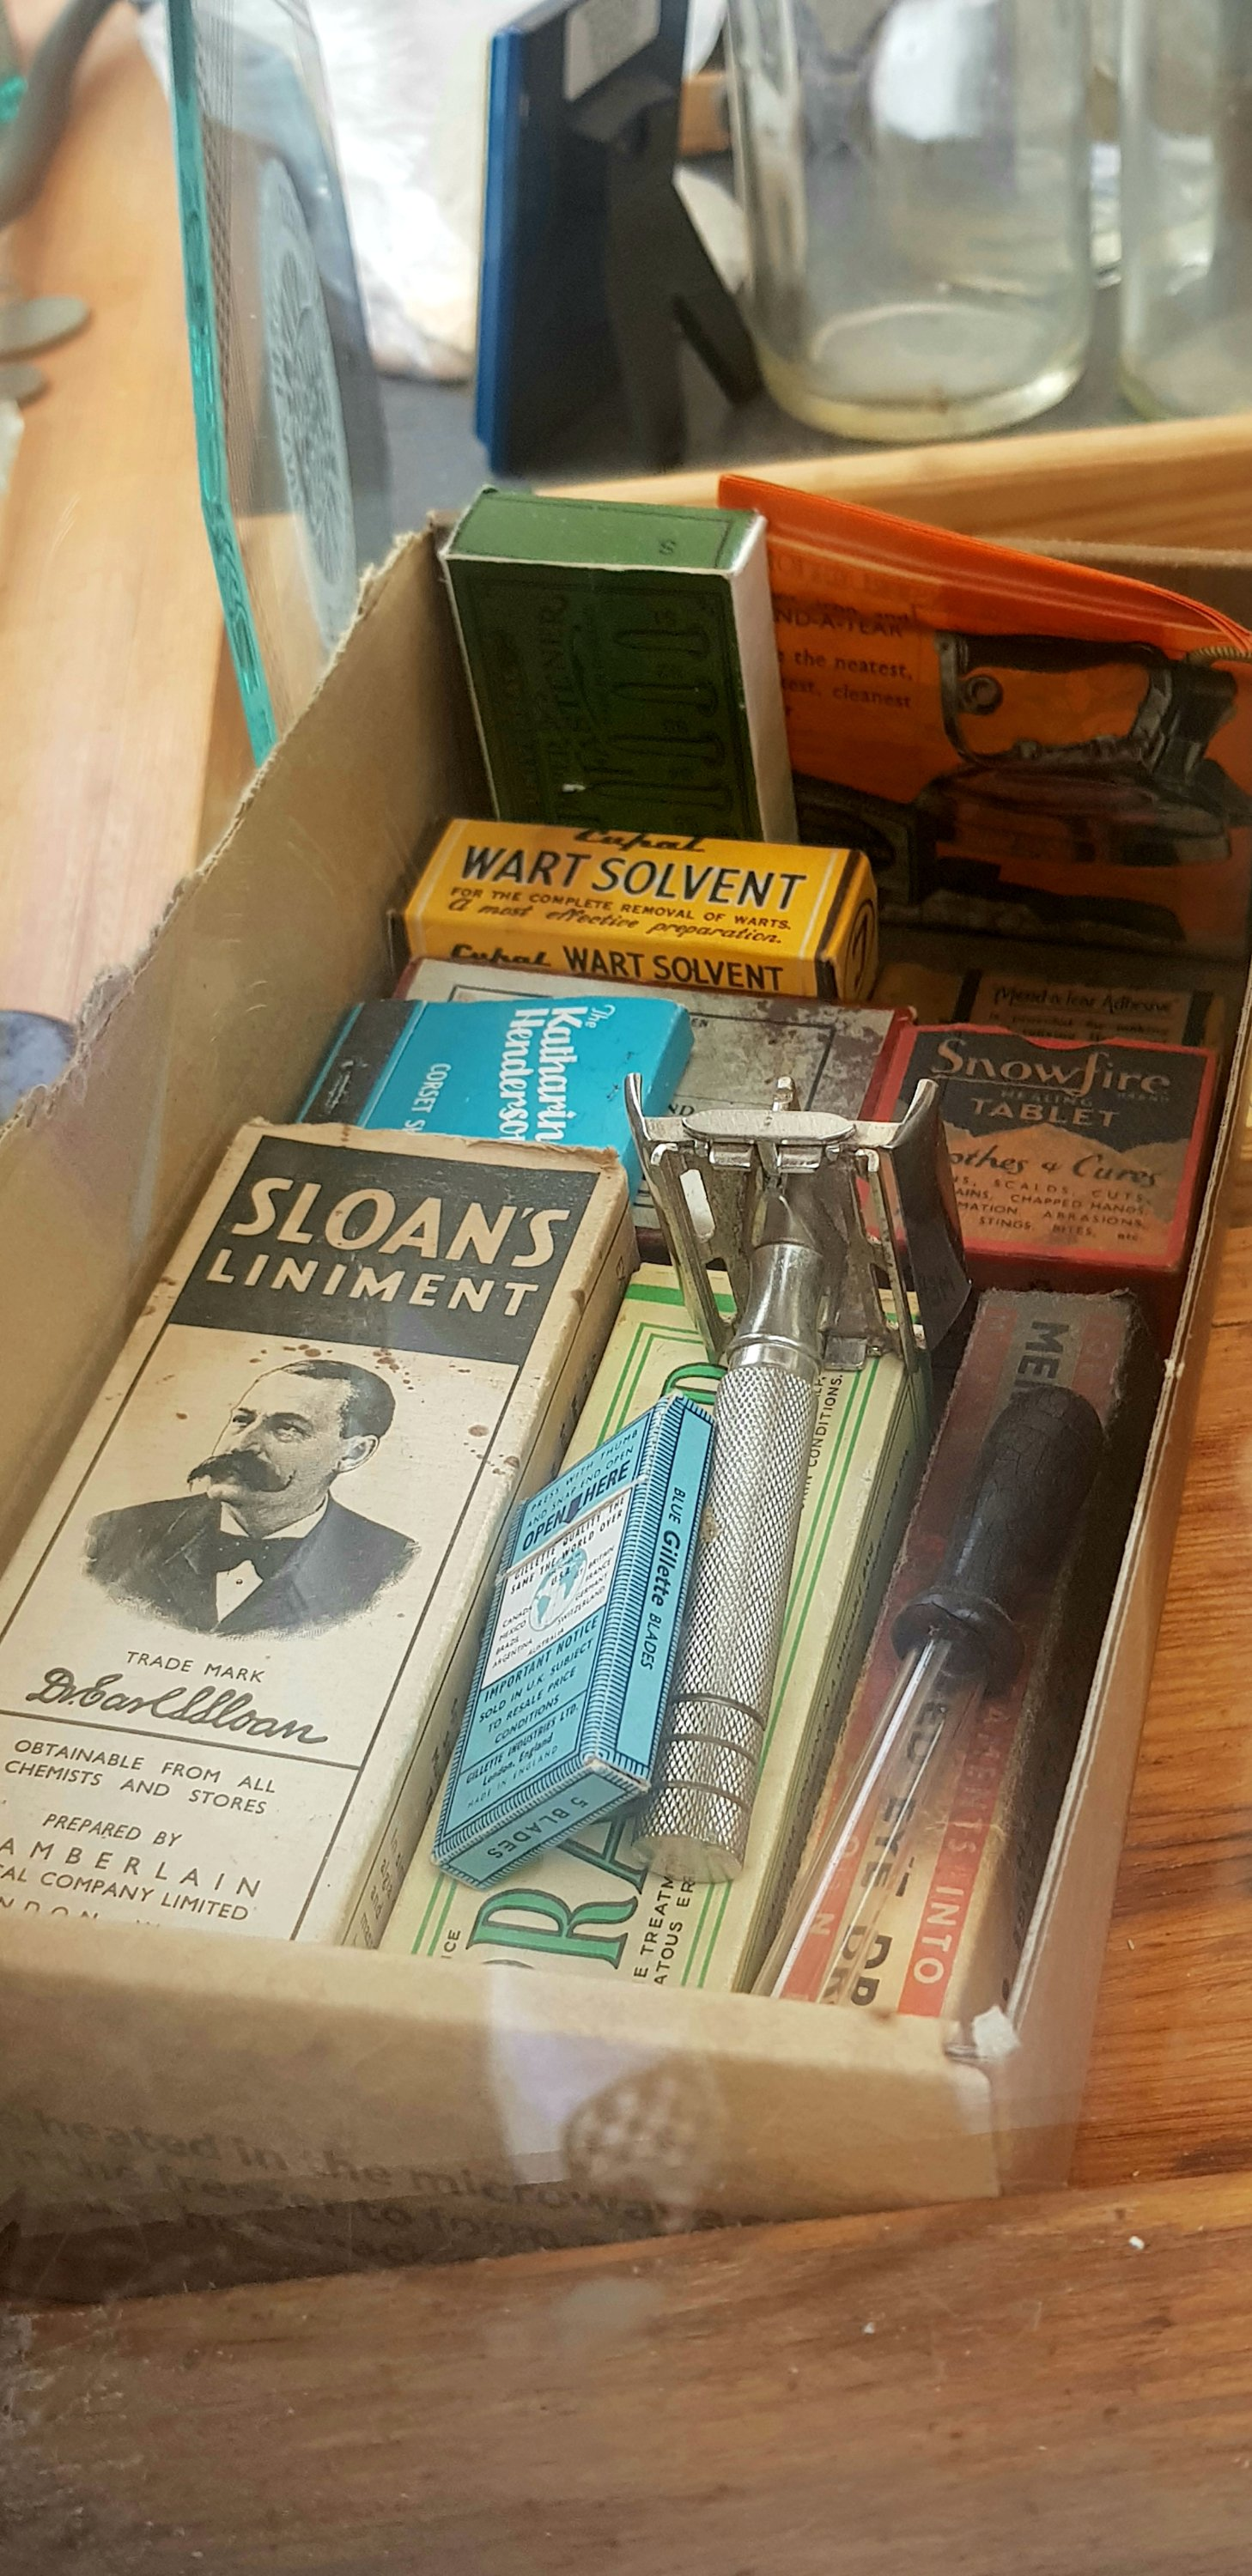 A collection of old shaving memorability